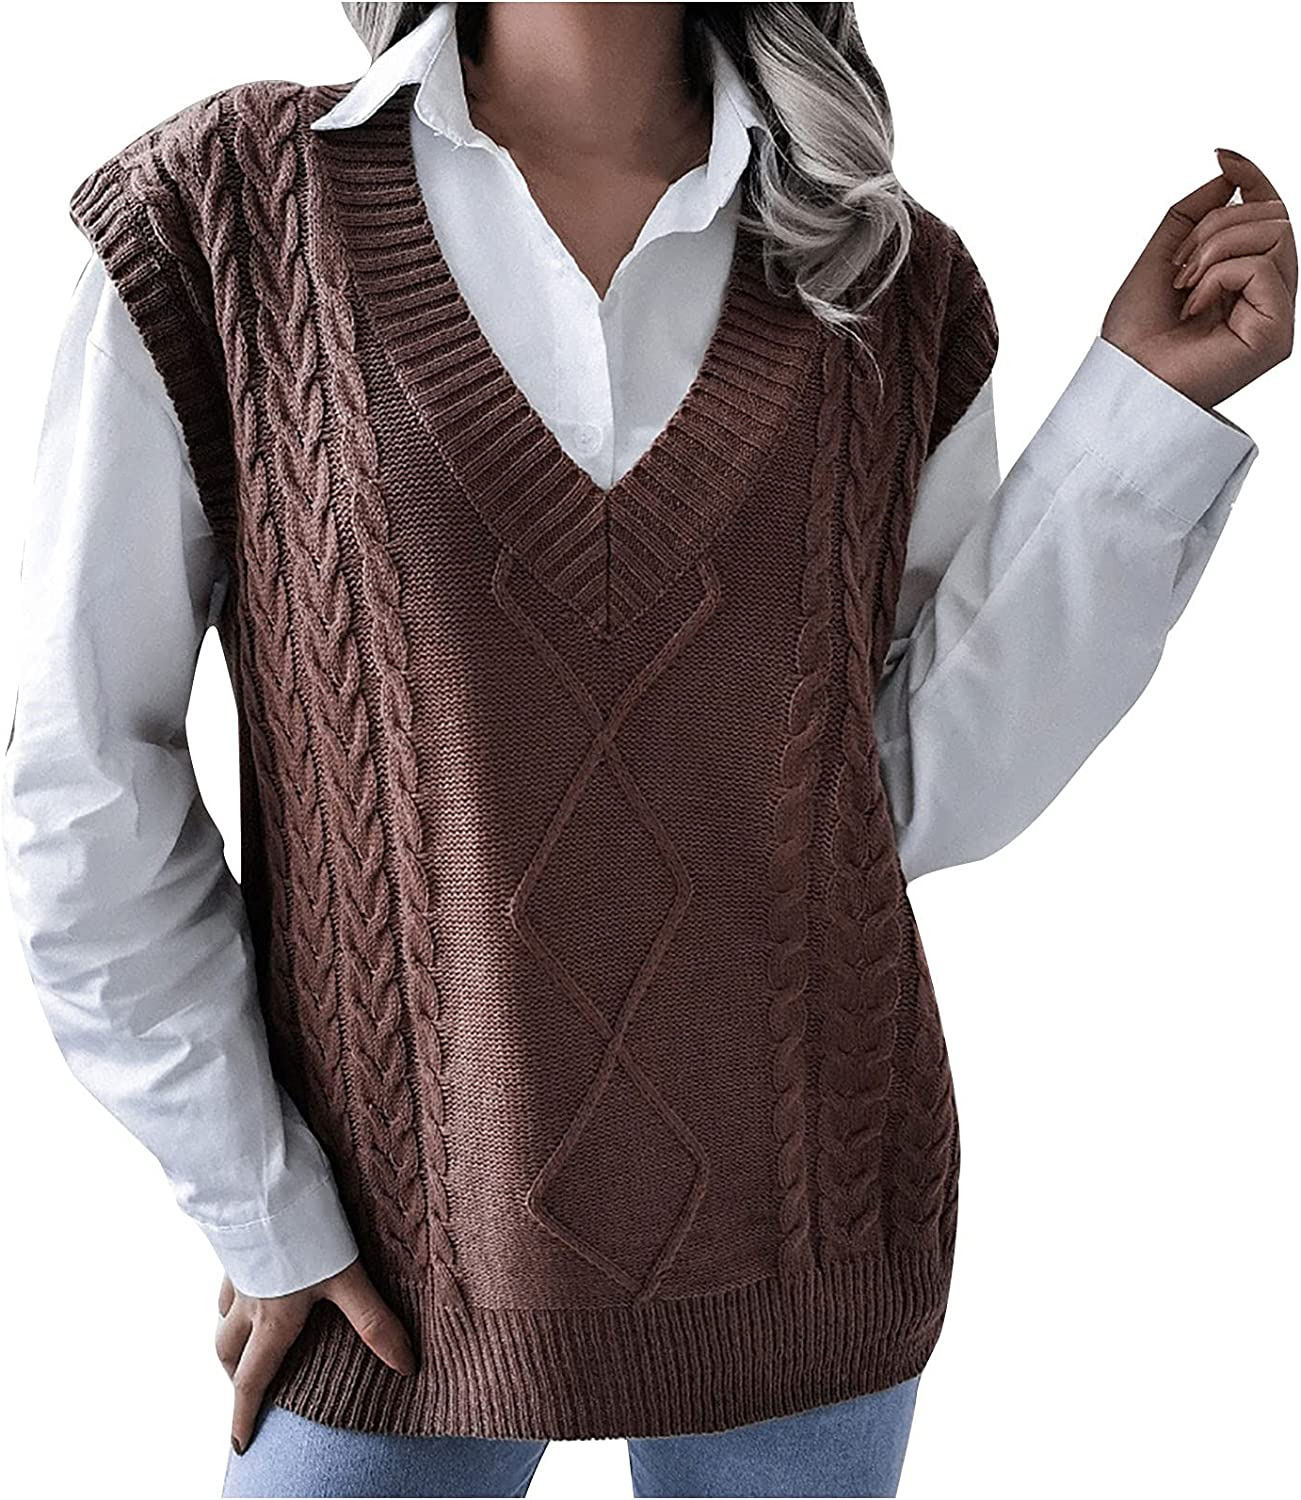 Yuege Women Casual V-Neck Hollow Knitted Vest Sweater Vest